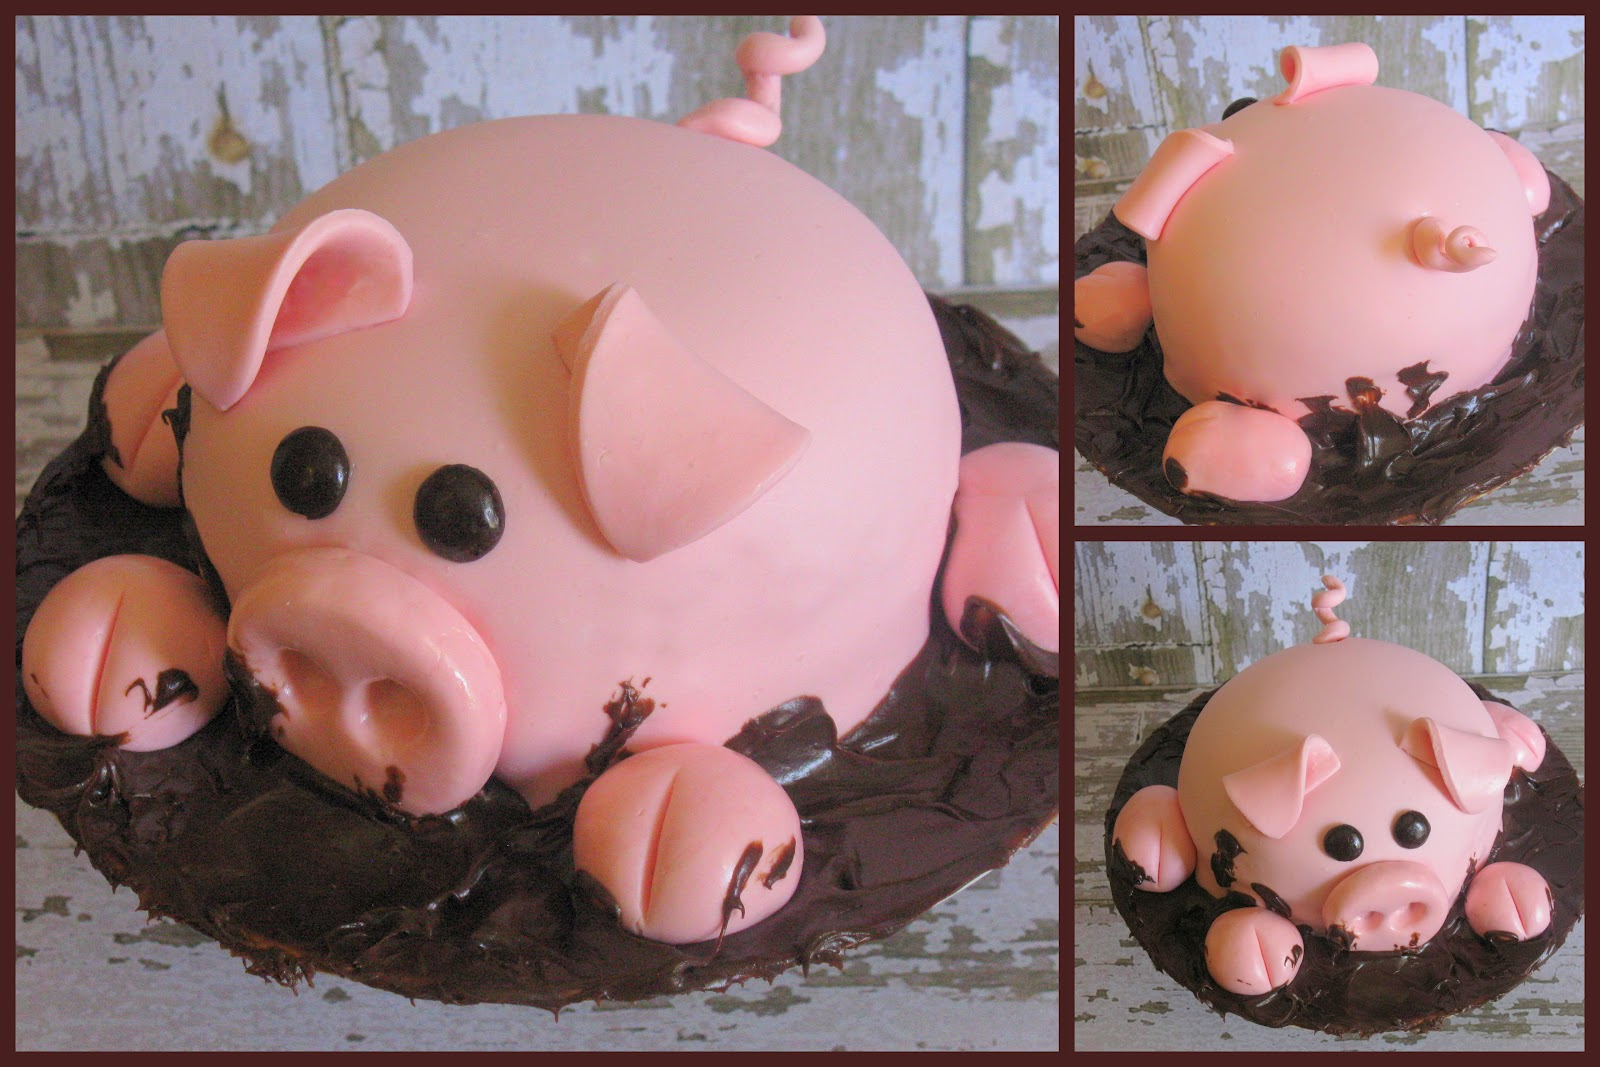 Pin Pig Cake I Gotta Try That Cake on Pinterest